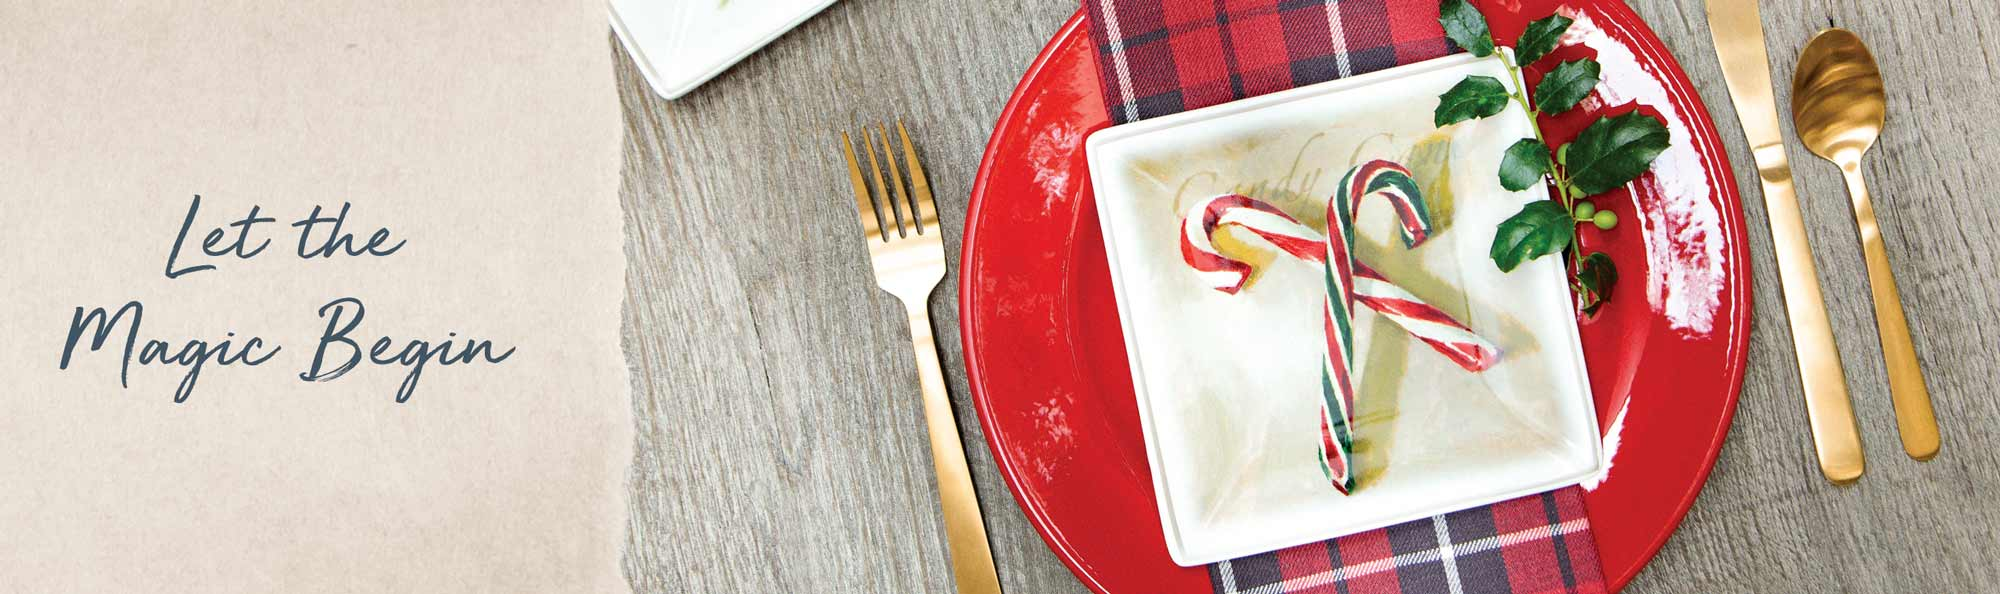 Let the magic begin. Christmas table place setting with candy canes.